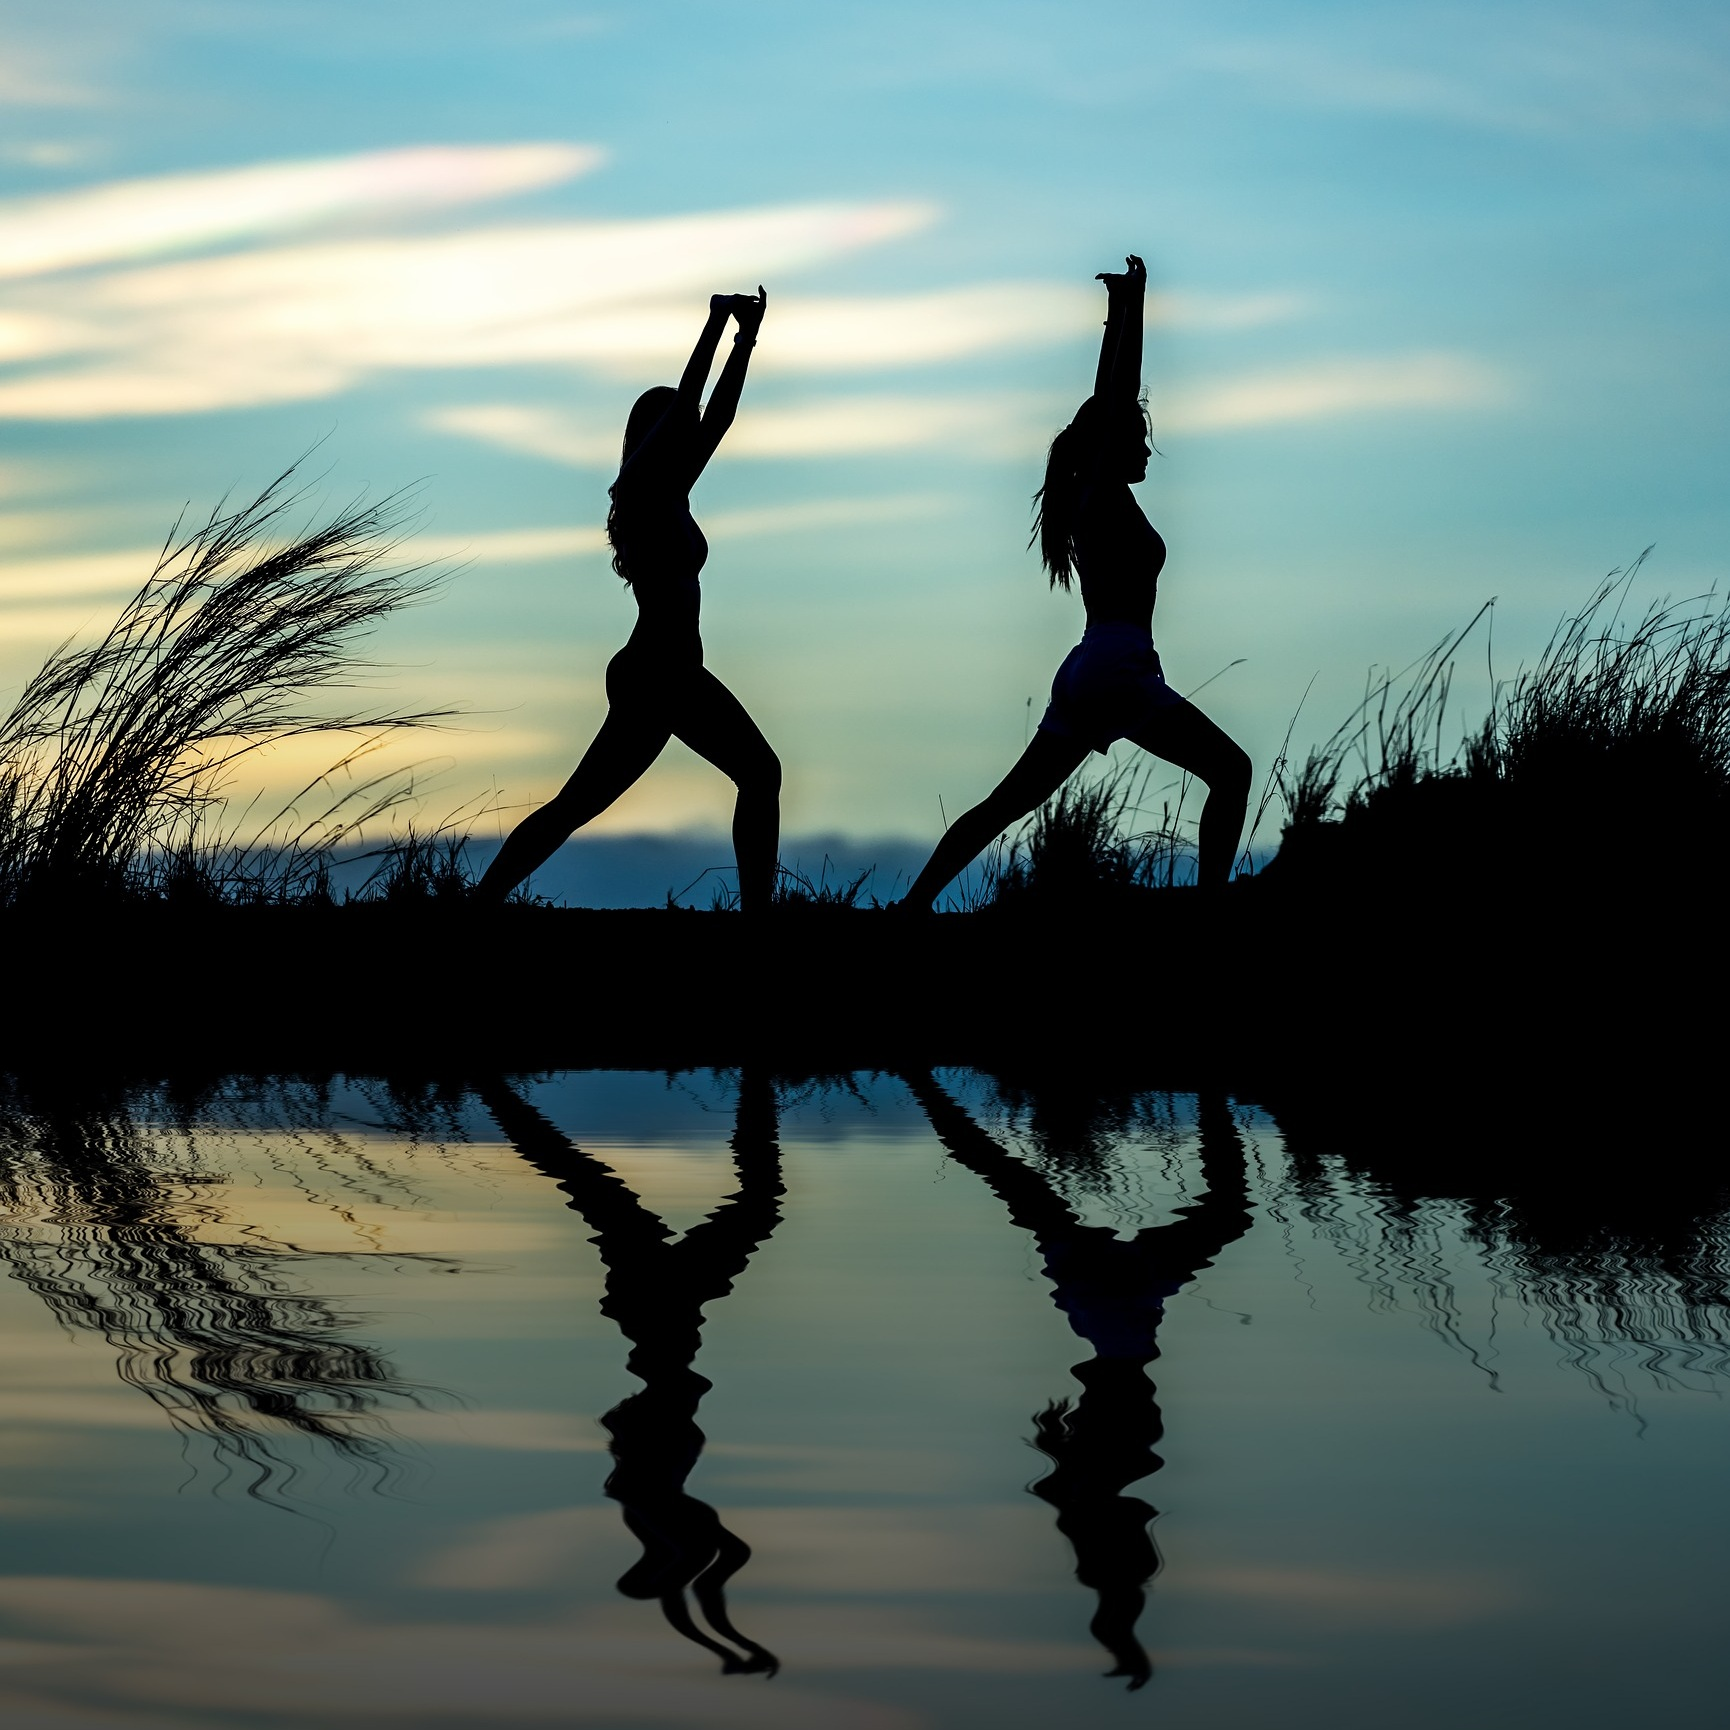 """1 HR BASICS:STANDING POSES - Sun Salutations """"Surya Namaskas"""" warm up the body and link your breath to your movements. Taught in this basics class are 3 versions as well as many standing poses. All taught with intent for no injury and refinement of posture.Come to feel strong and confident."""